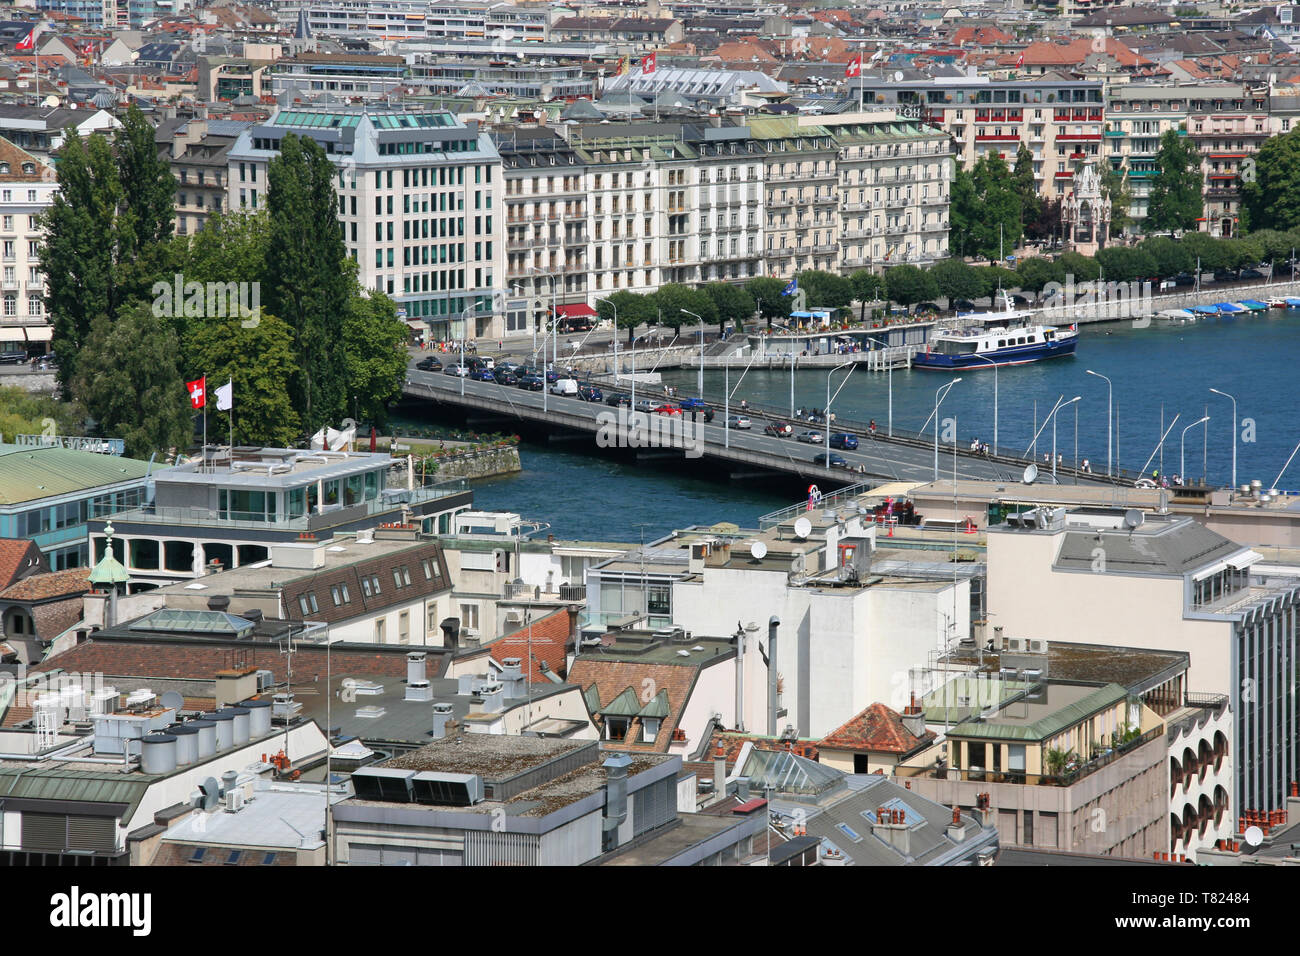 Cityscape of Geneva, Switzerland, seen from the top of cathedral. - Stock Image